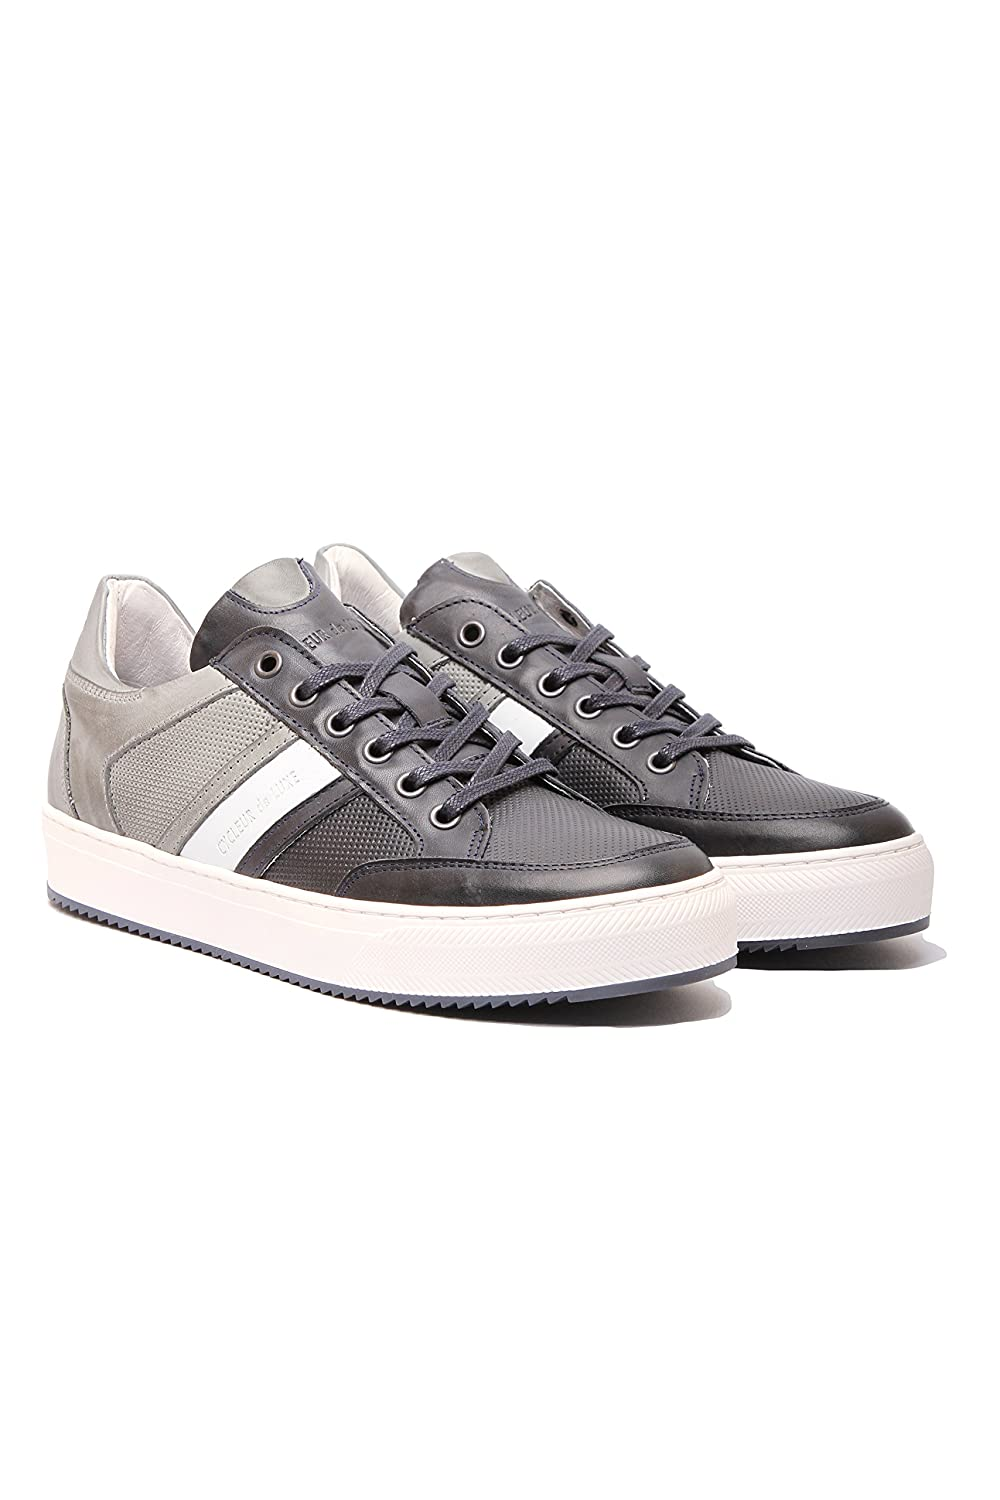 more photos 45a8a e8819 Cycleur de luxe Sneaker Burton Grau 42 EUMehrfarbig - associate-degree.de